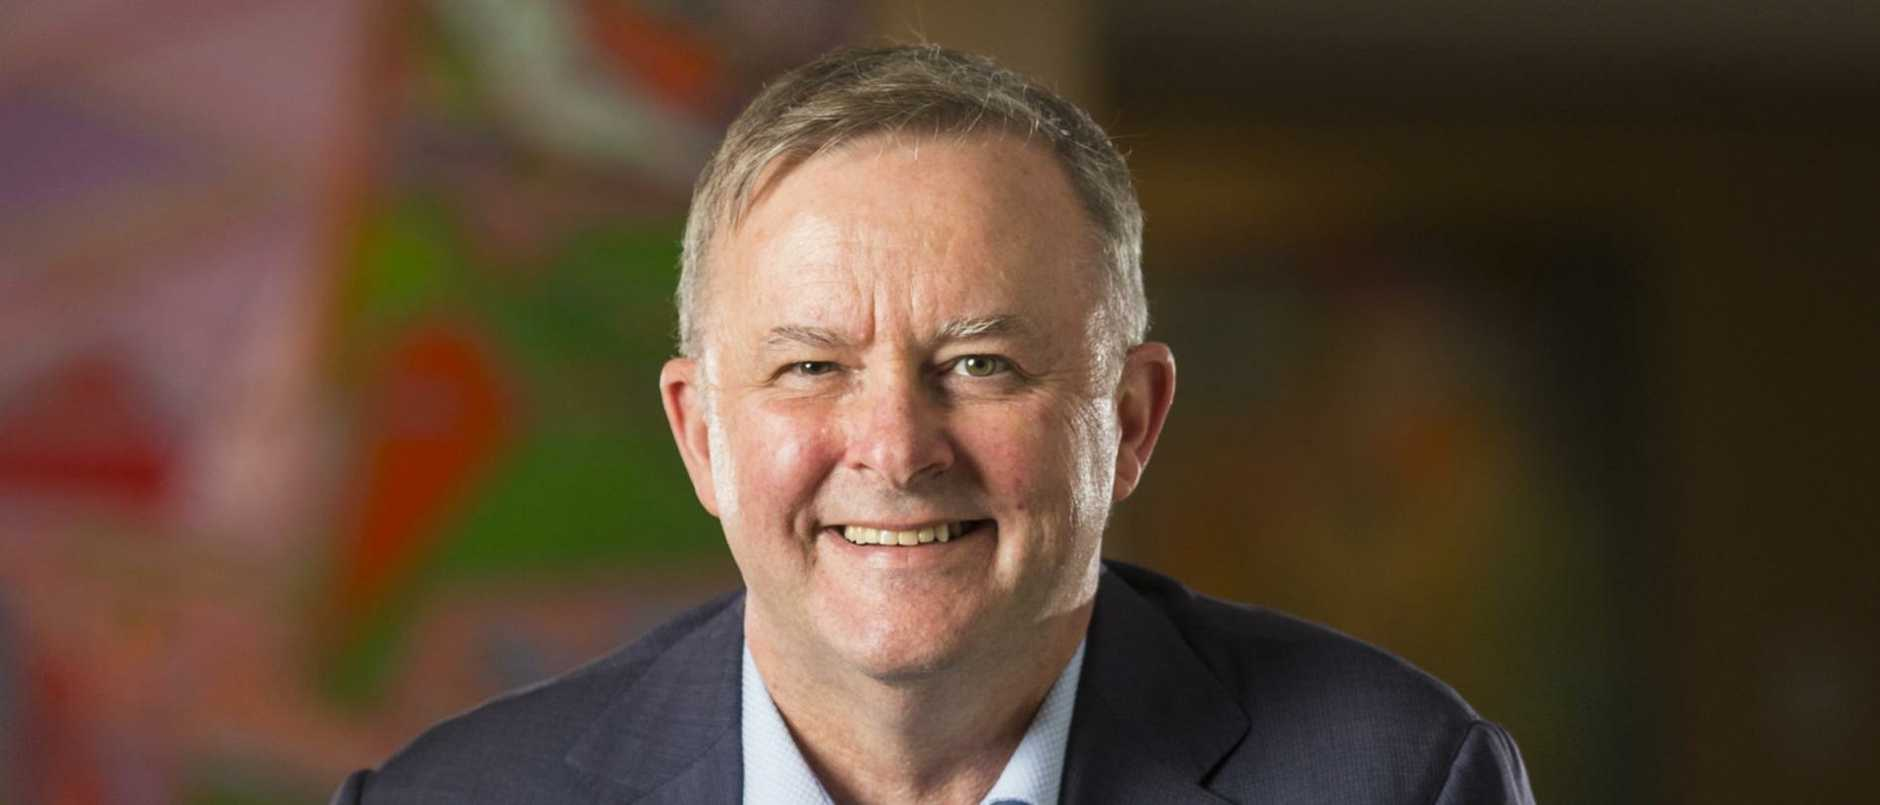 GEN Anthony Albanese